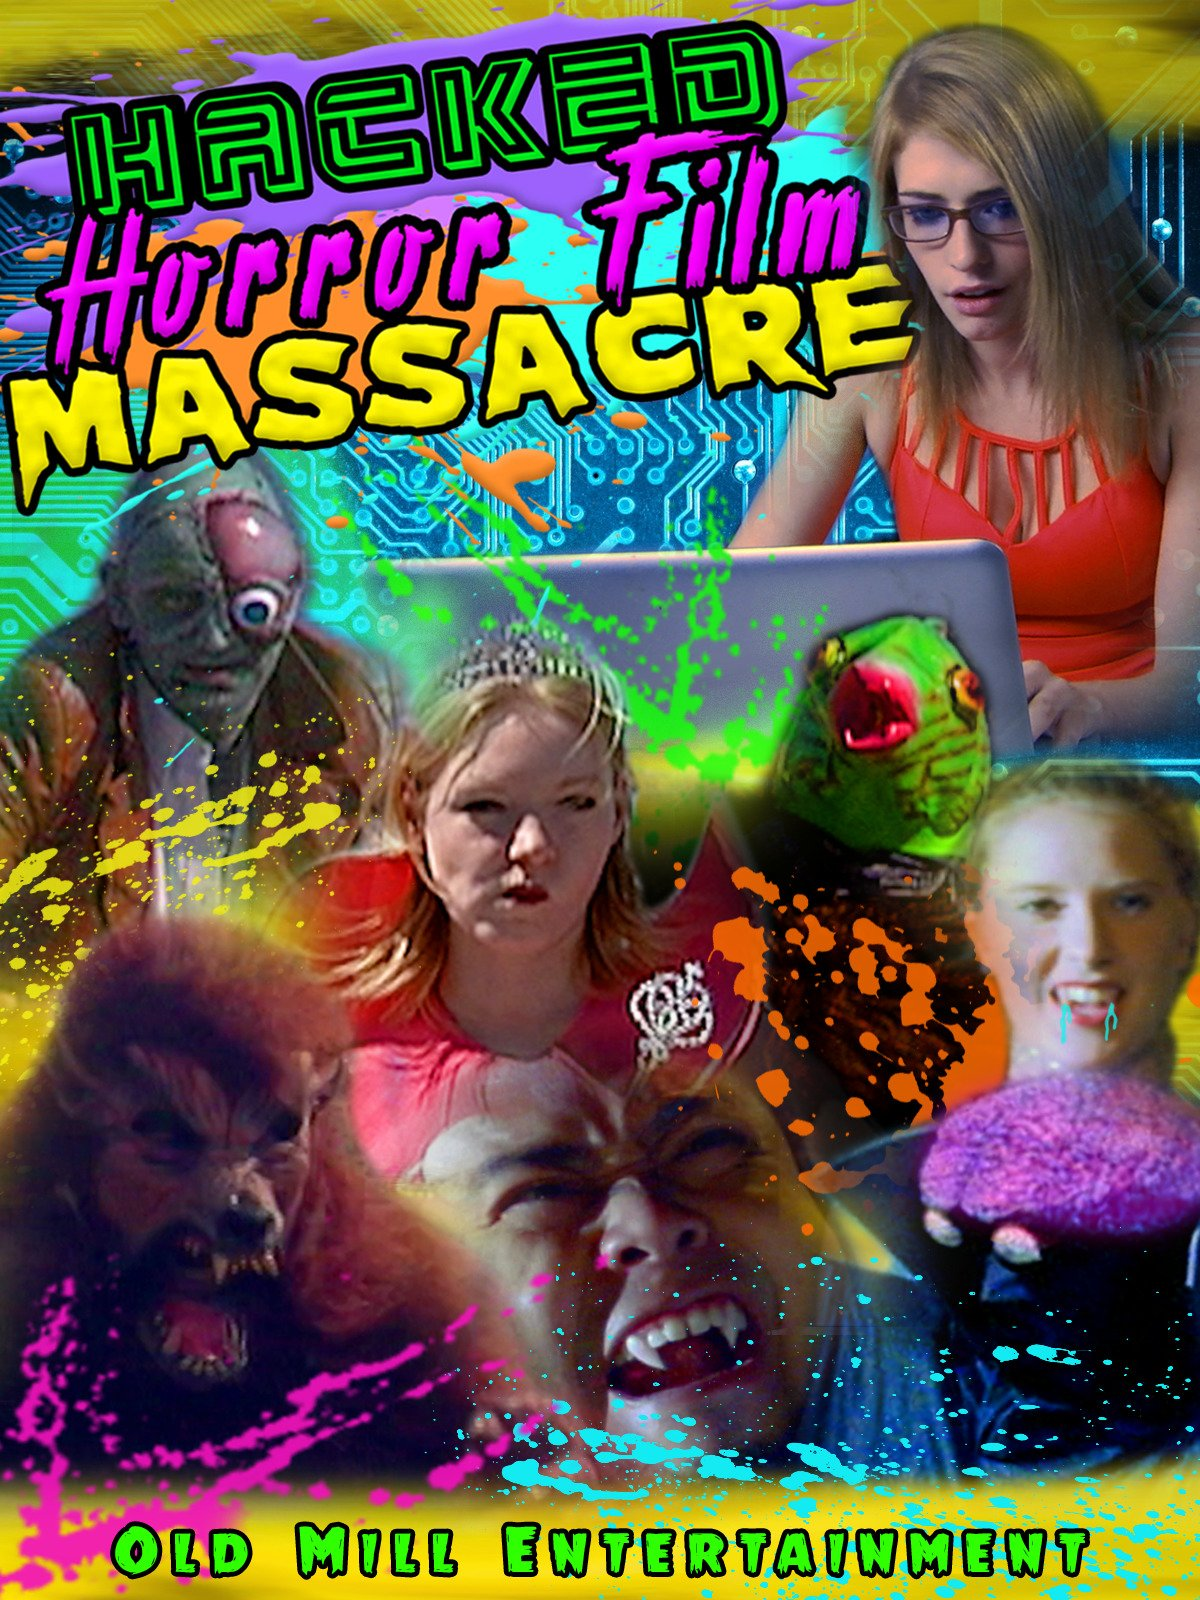 Hacked Horror Film Massacre